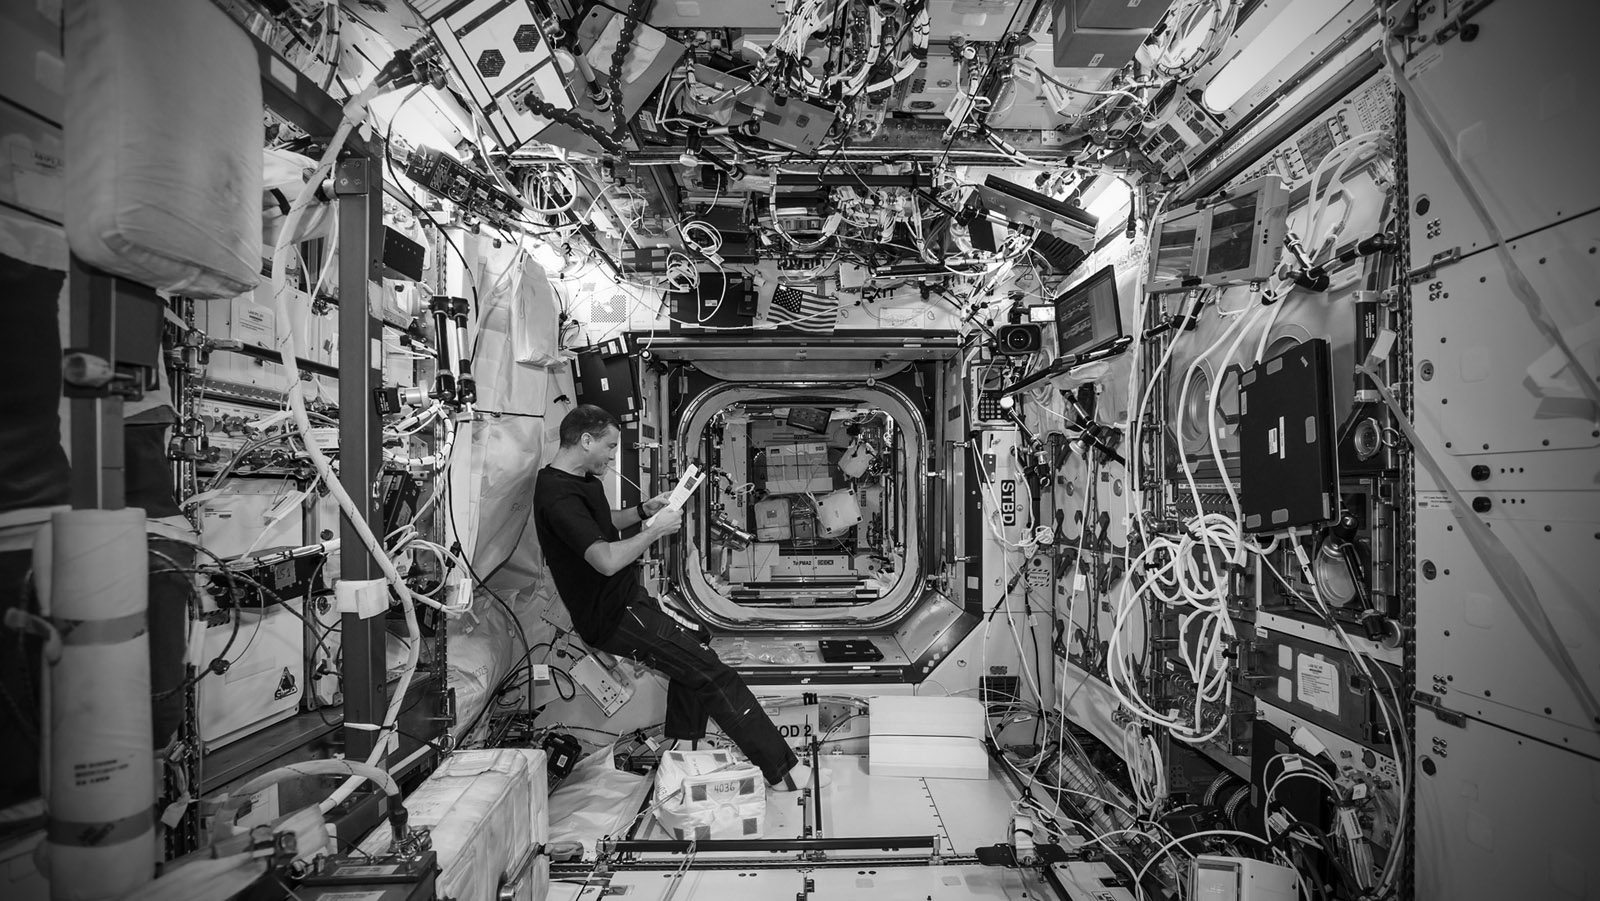 The interior of the International Space Station. (image courtesy NASA)